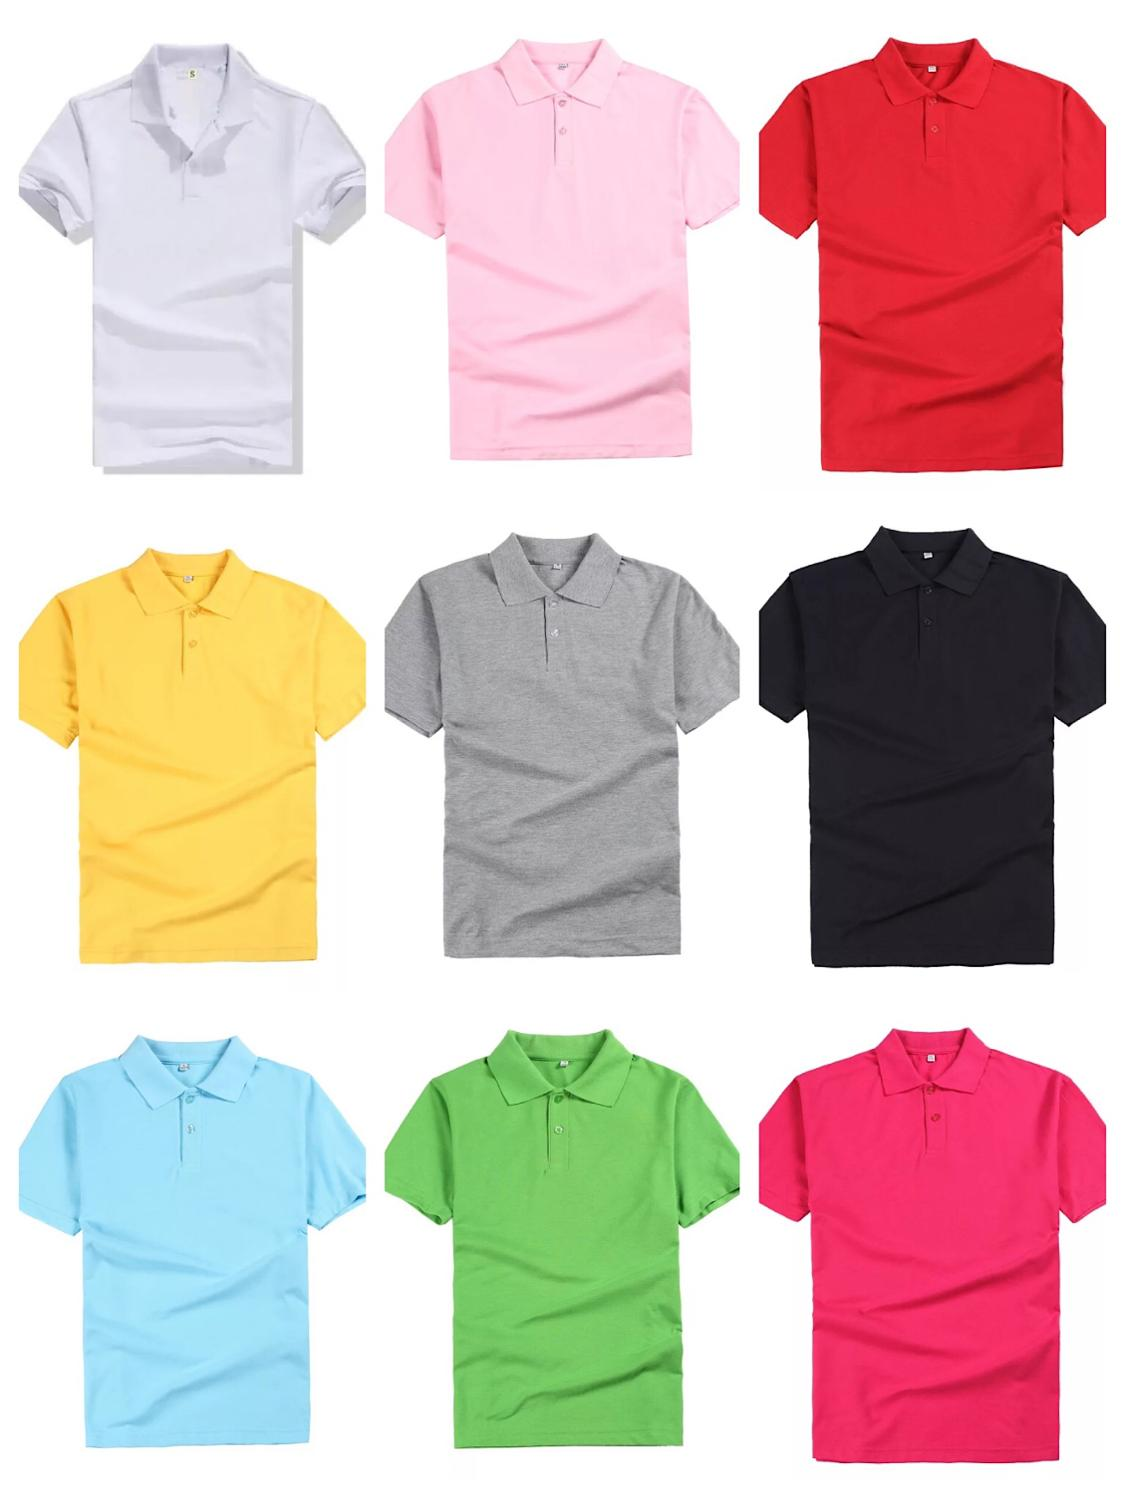 men's and women's   polo   shirts casual color cotton overalls 12 color   polo   shirts with short sleeves Free custom name logo